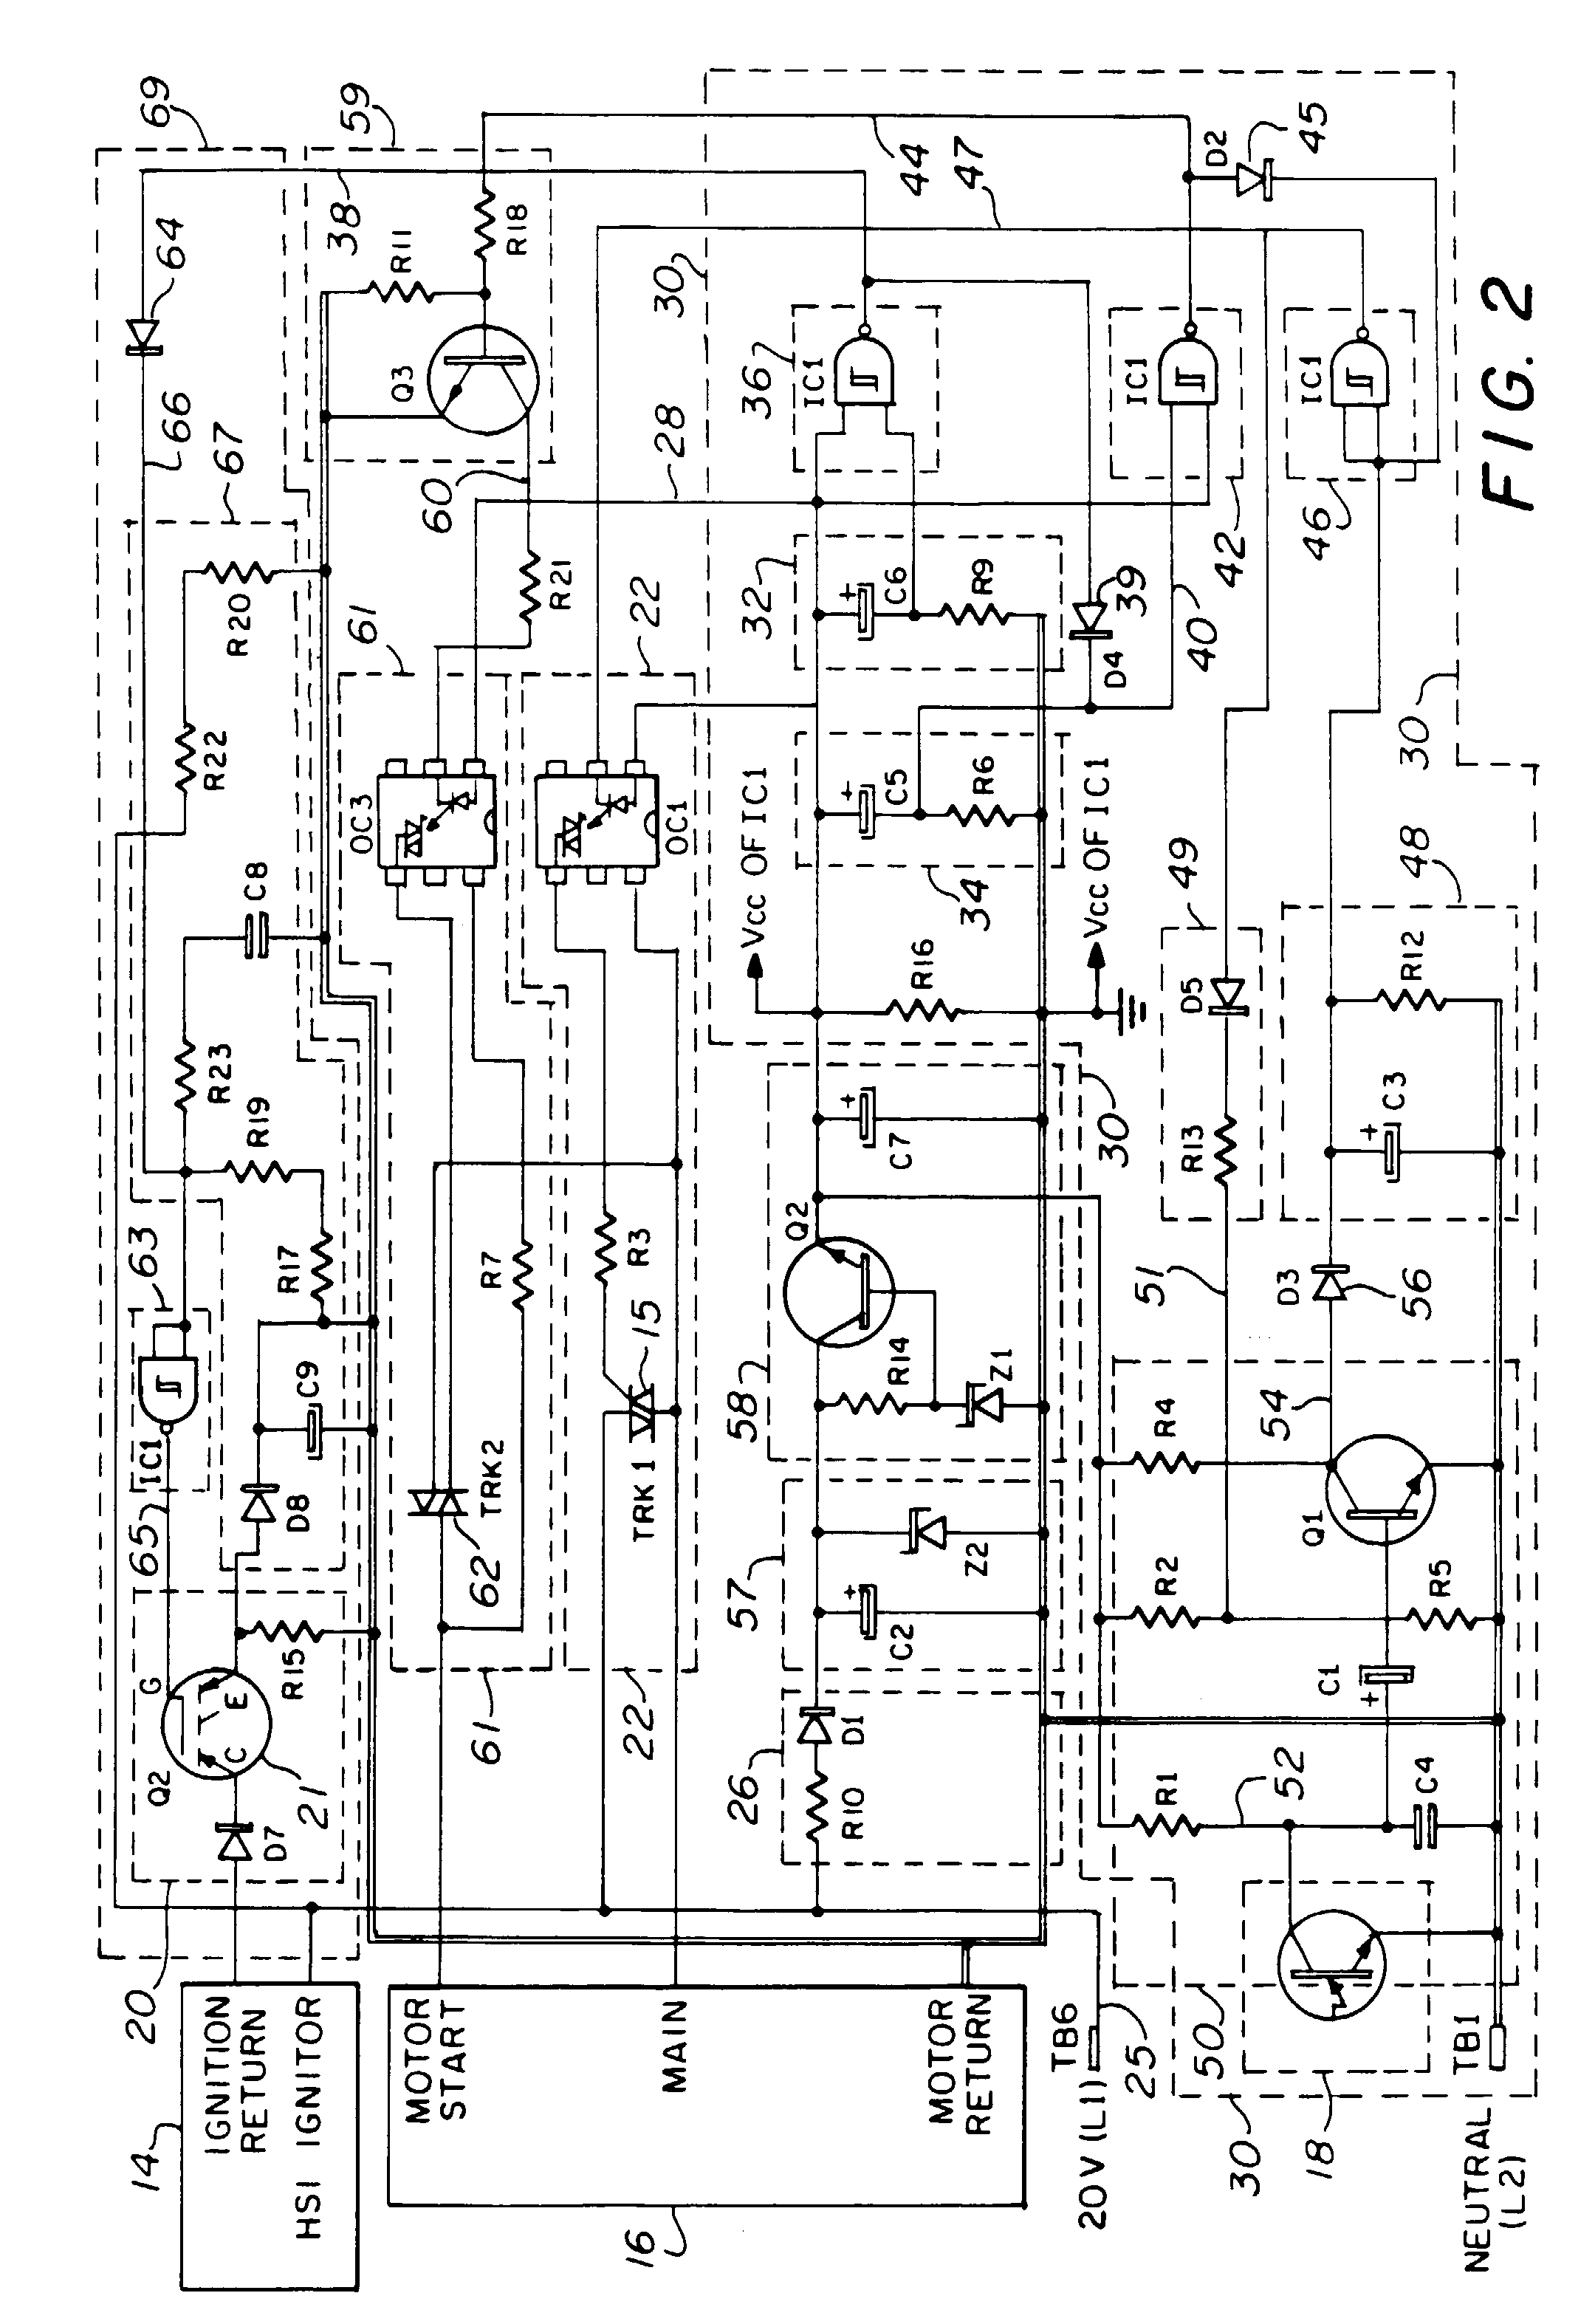 Maxon Gas Valve Wiring Diagram Question About Power Flame Dual Amplifier Valves Manual Lift Gate Parts